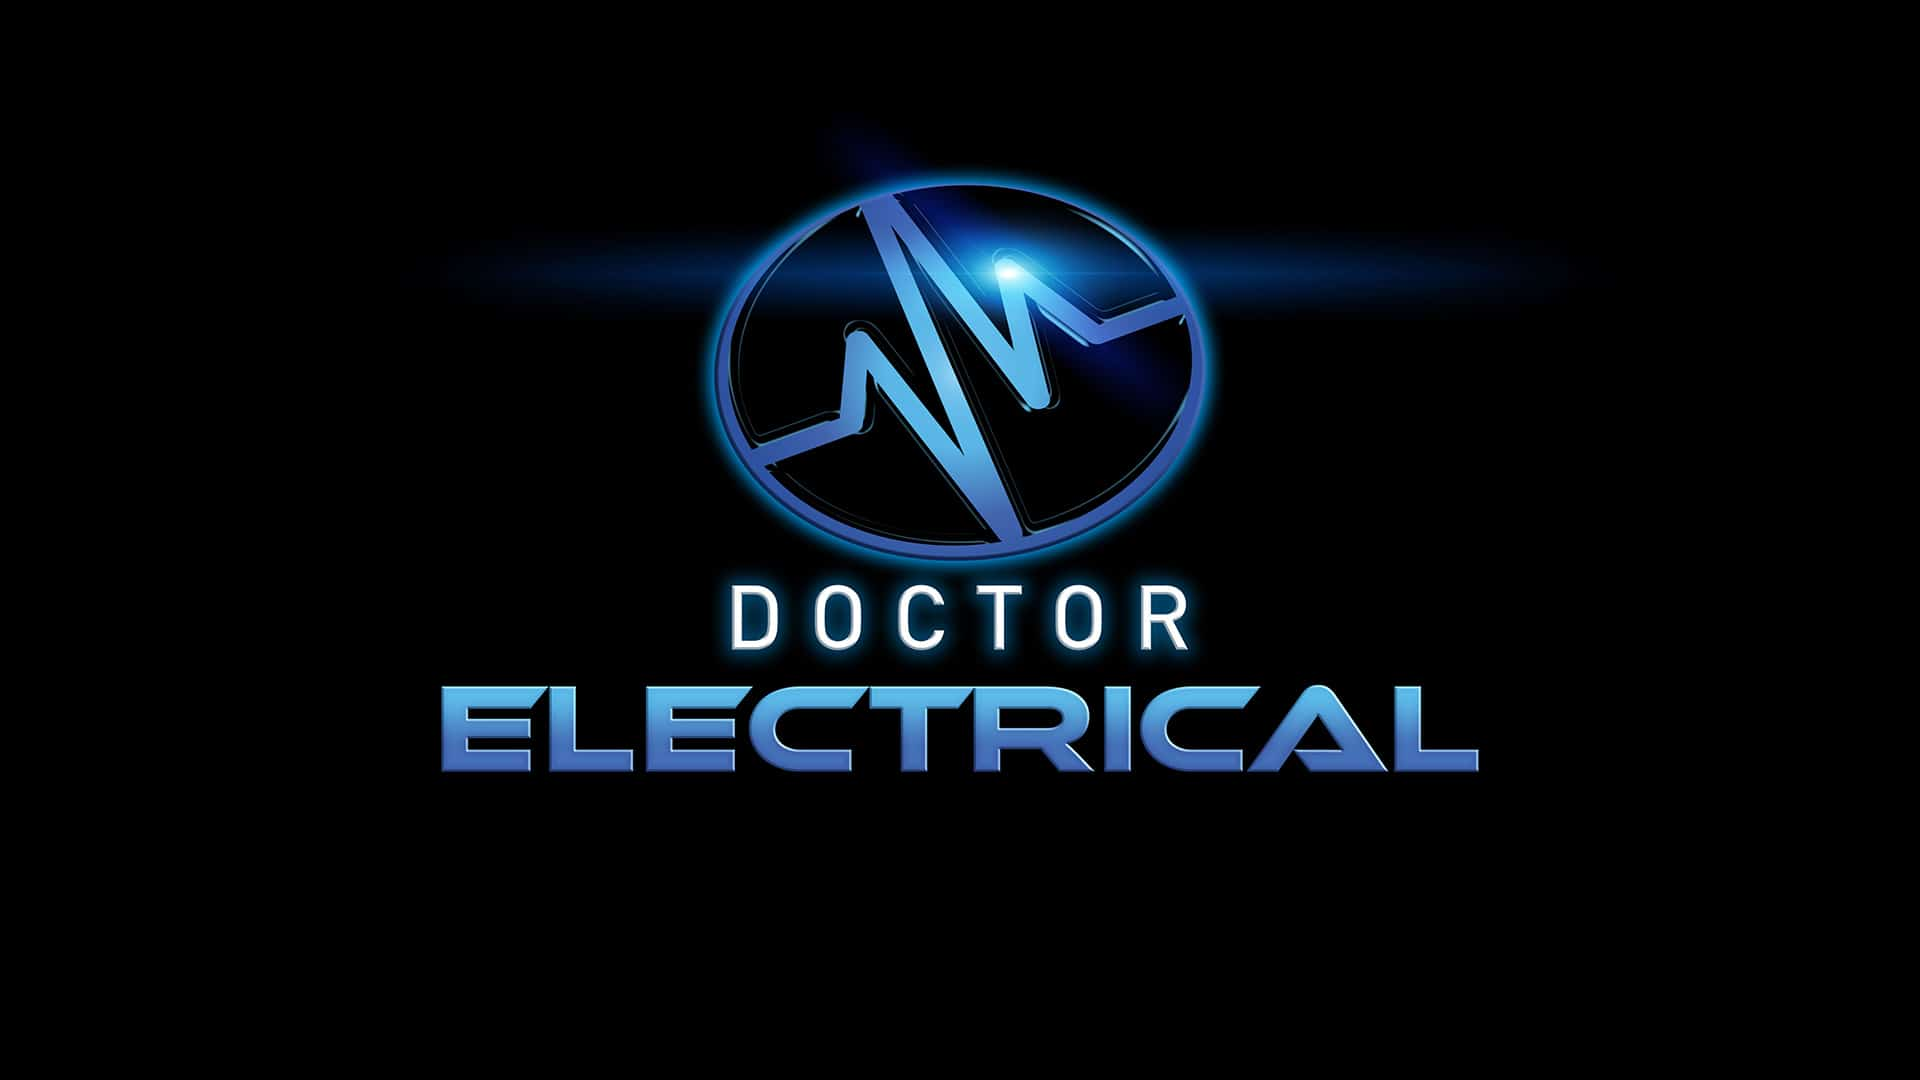 Doctor Electrical Image 1